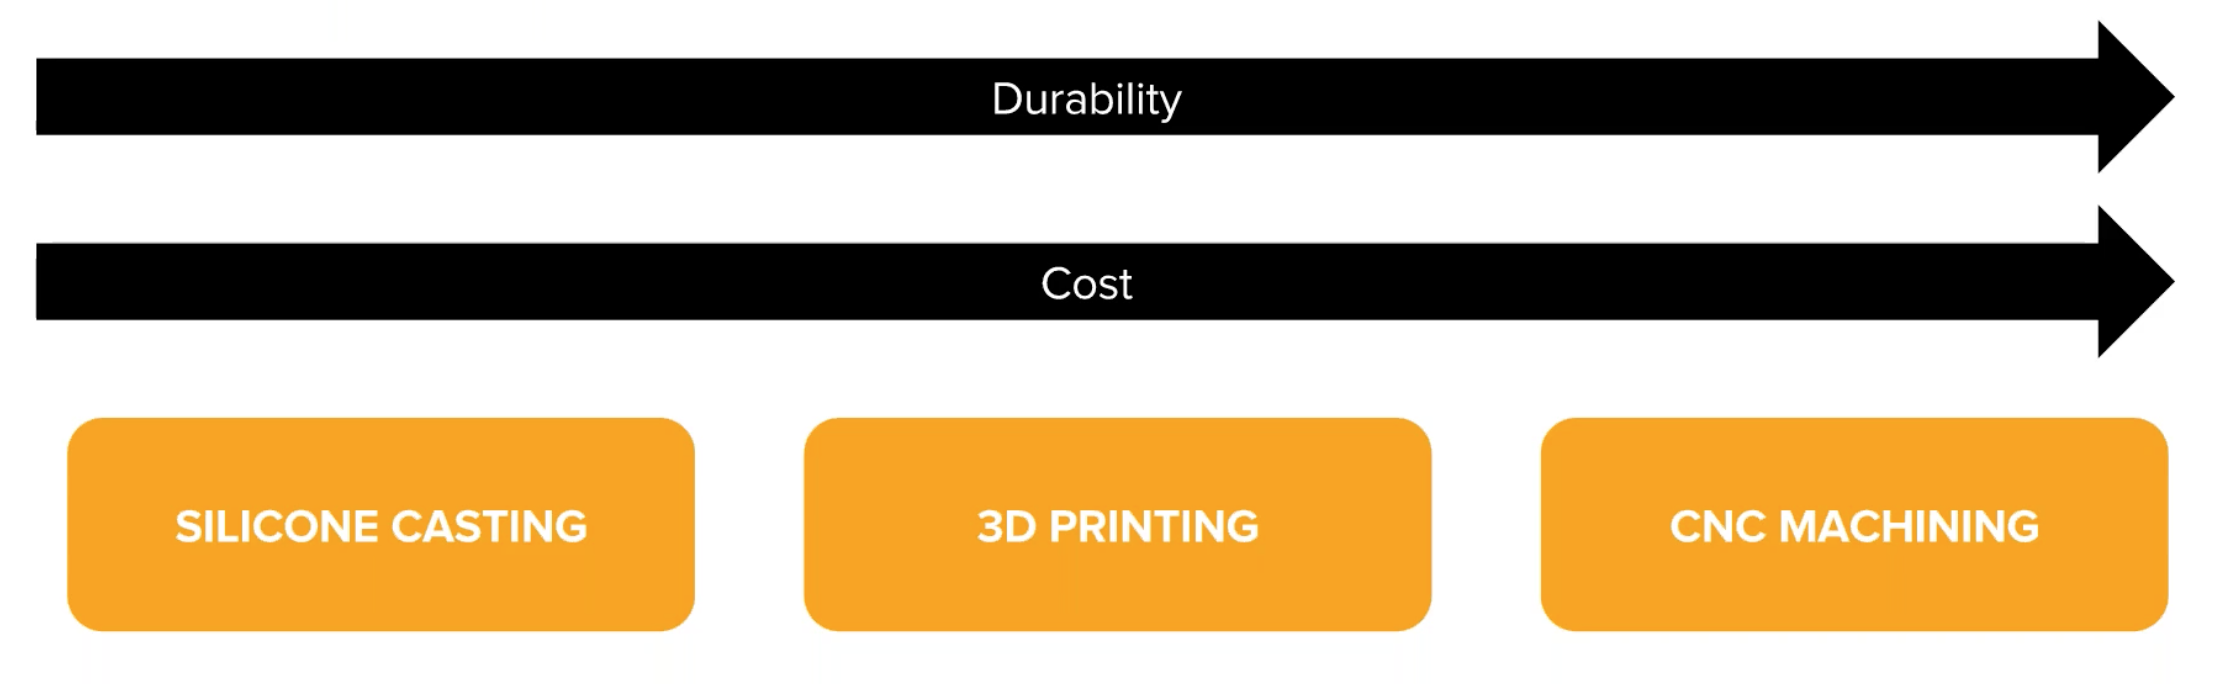 3D printing molds is typically less expensive and easier than using techniques like CNC machining or silicone casting for small runs.